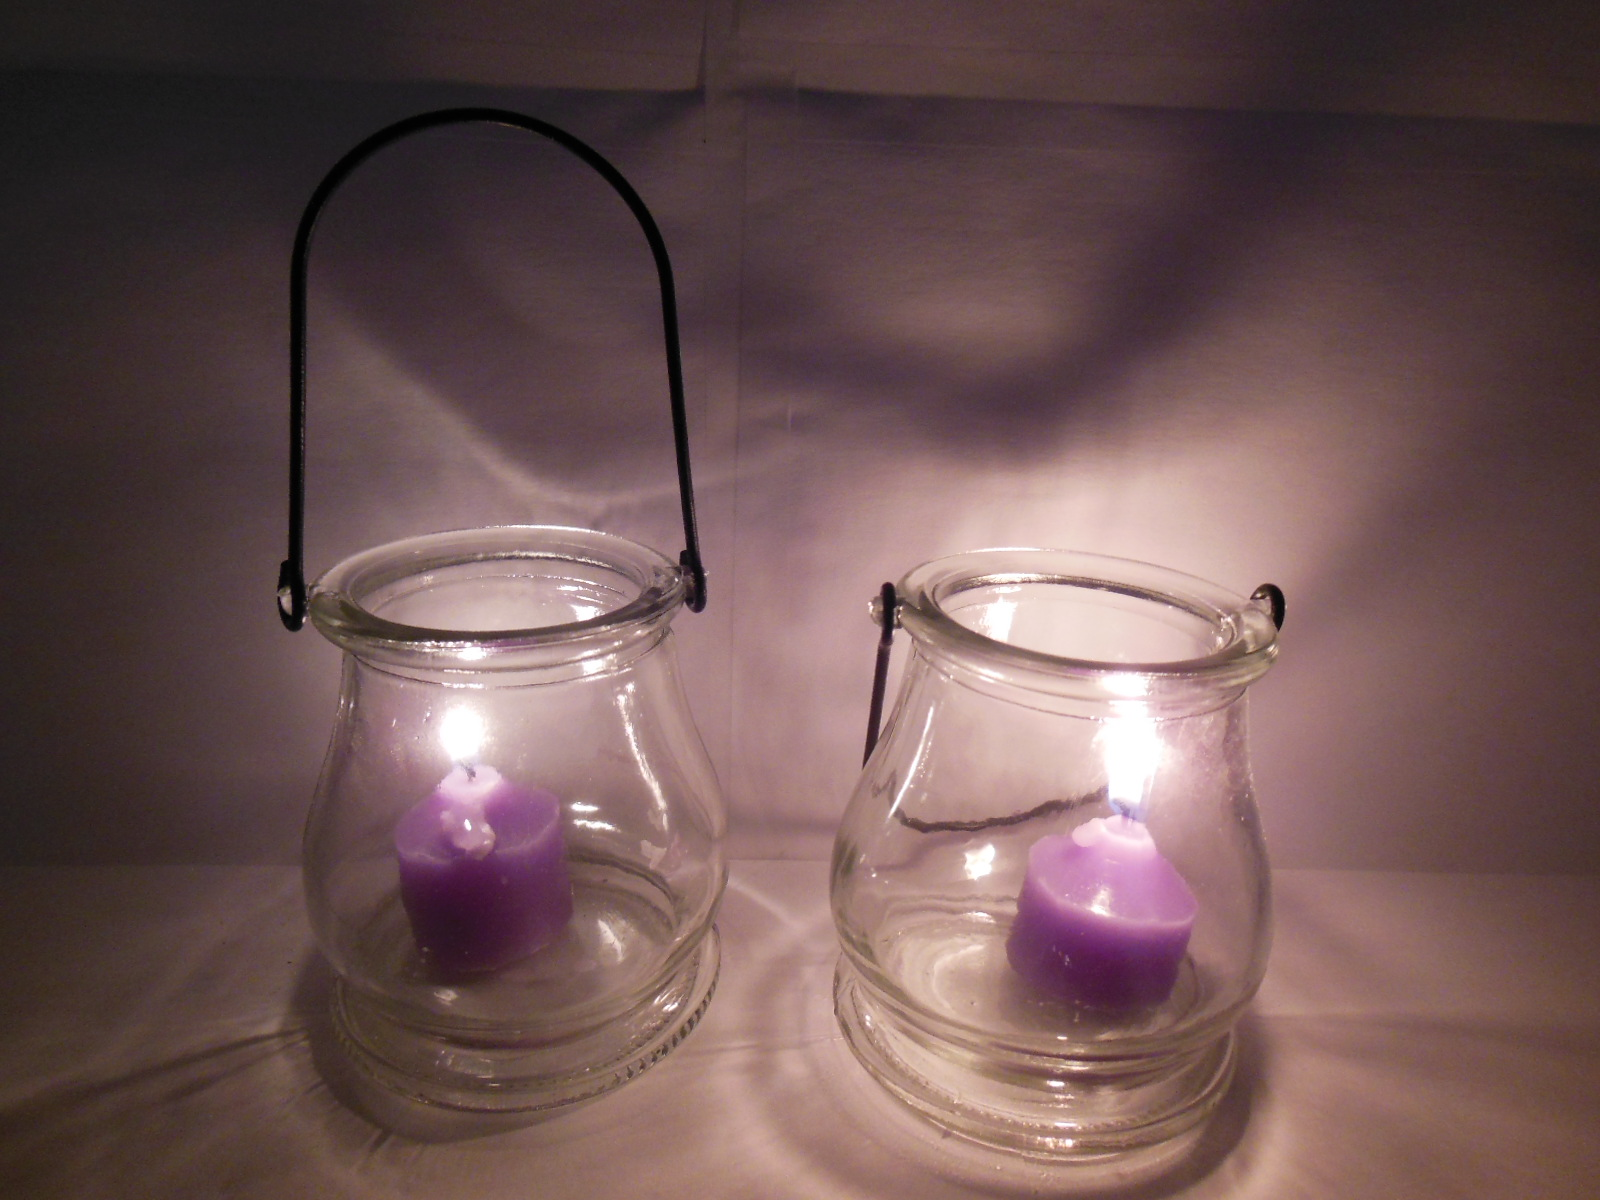 Hanging T Light Holders Part - 40: ... Hanging Glass Tea Light Holder Wedding Favor. Glass Candle Holder